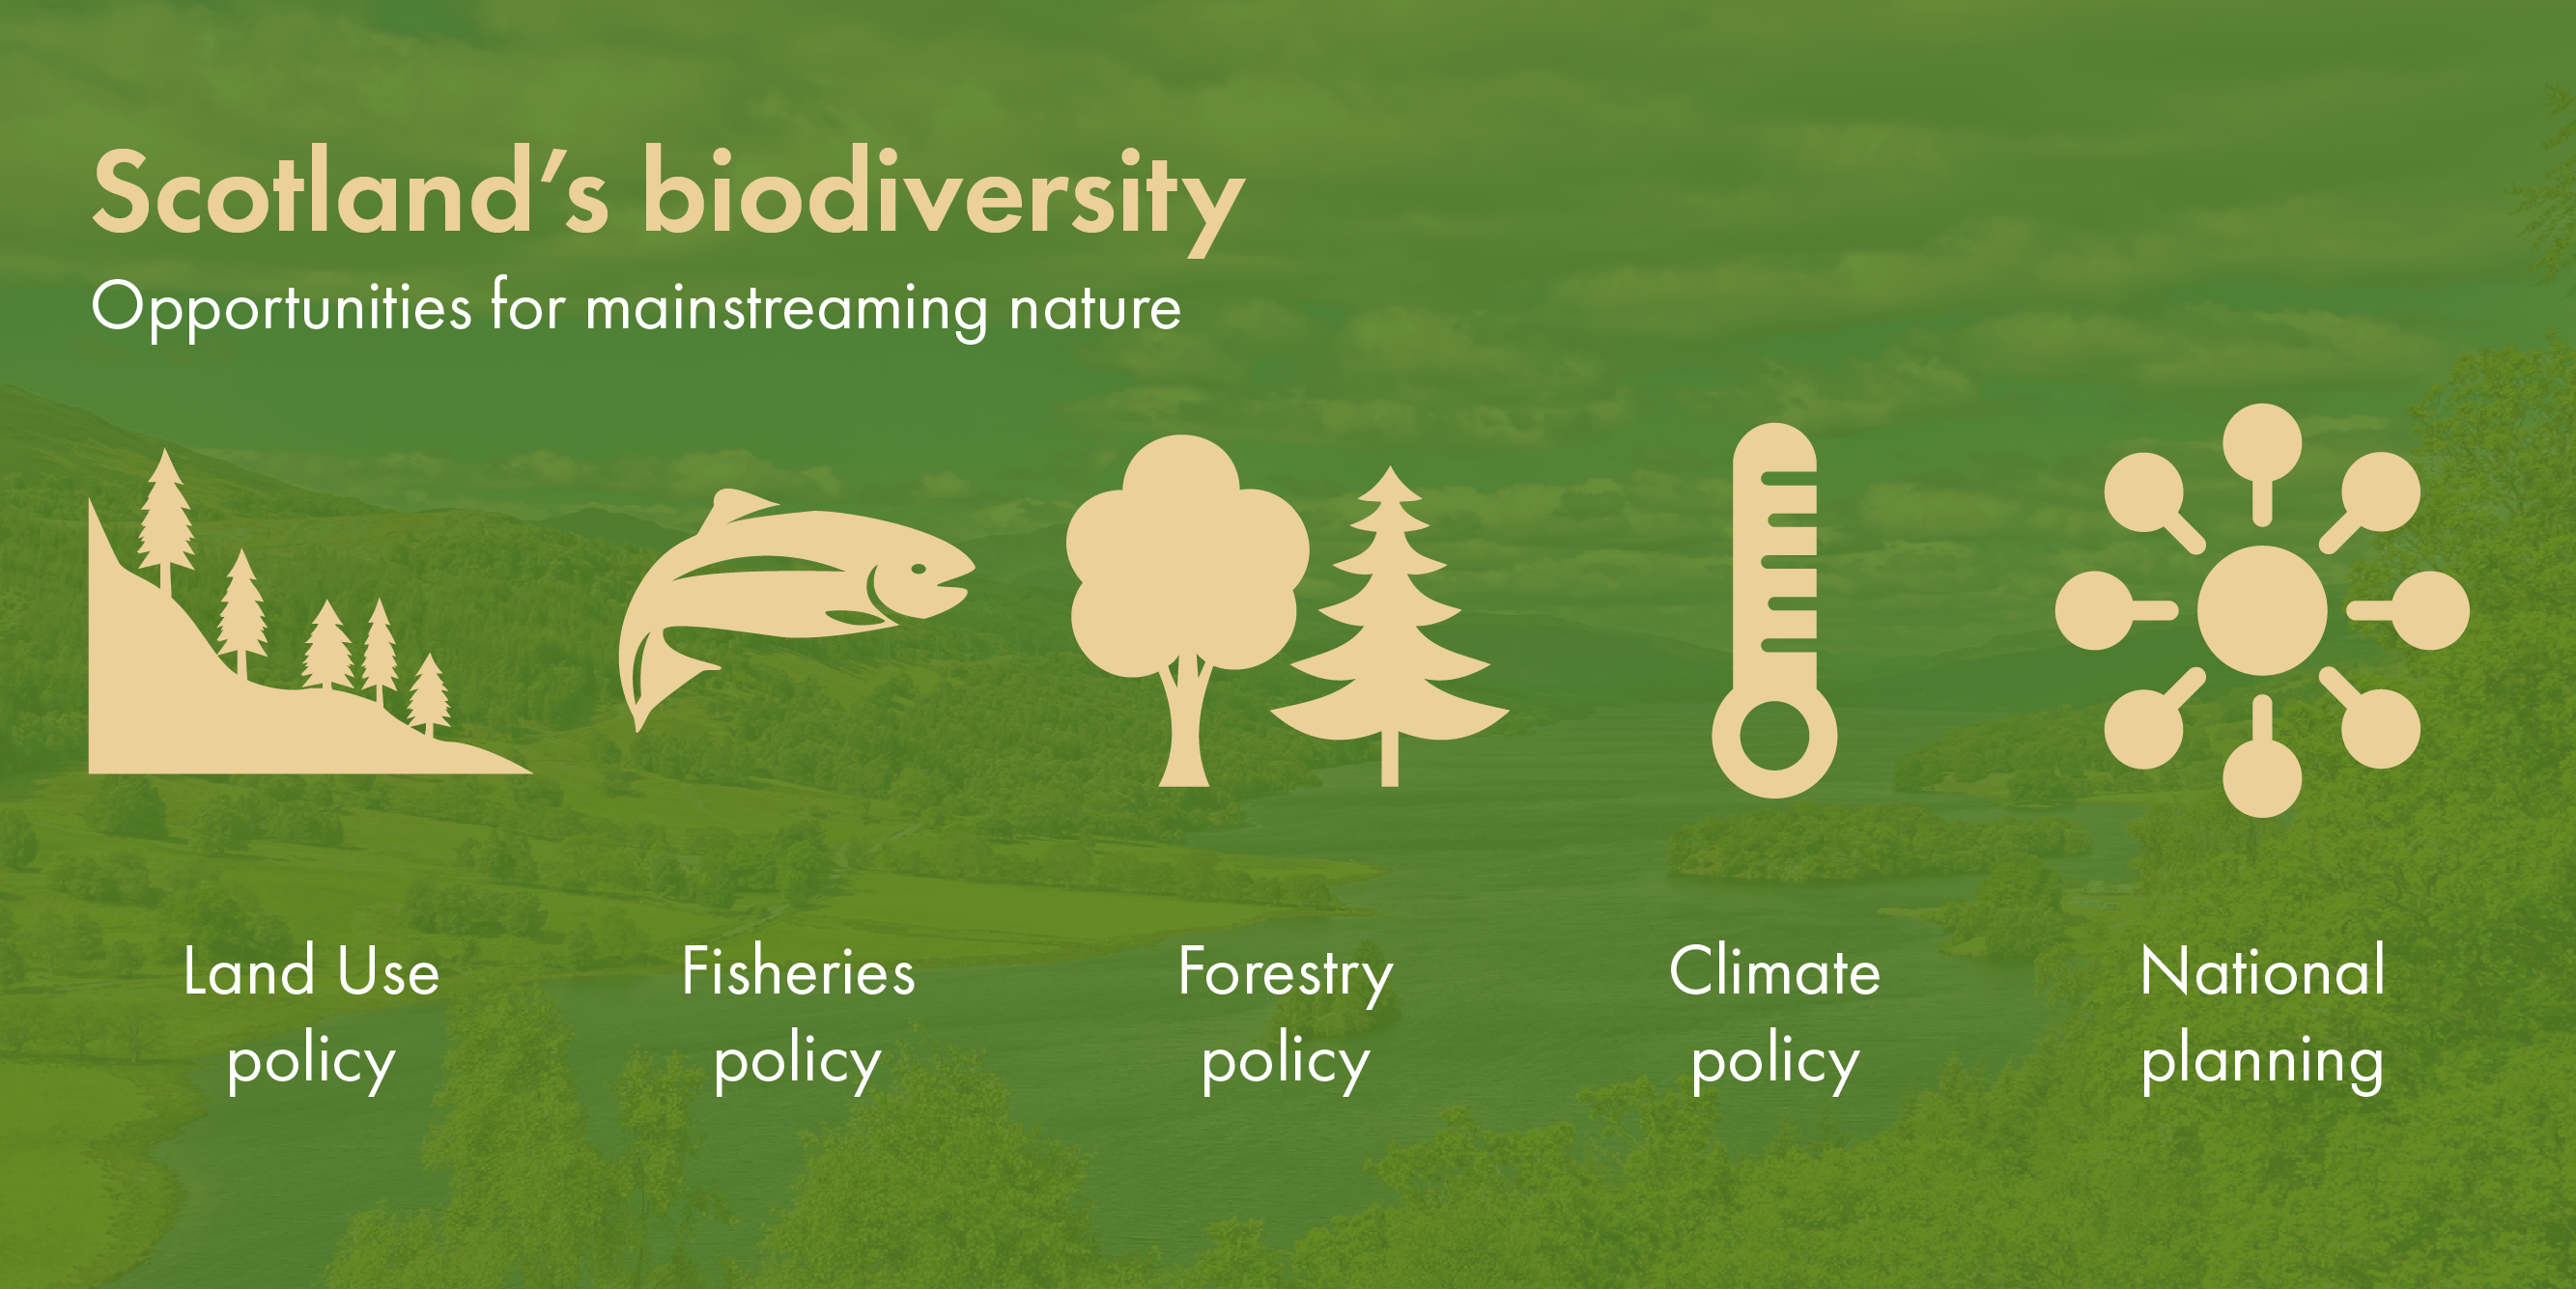 Policy areas for biodiversity mainstreaming in Scotland: rural policy, fisheries, forestry policy, climate policy, national planning.